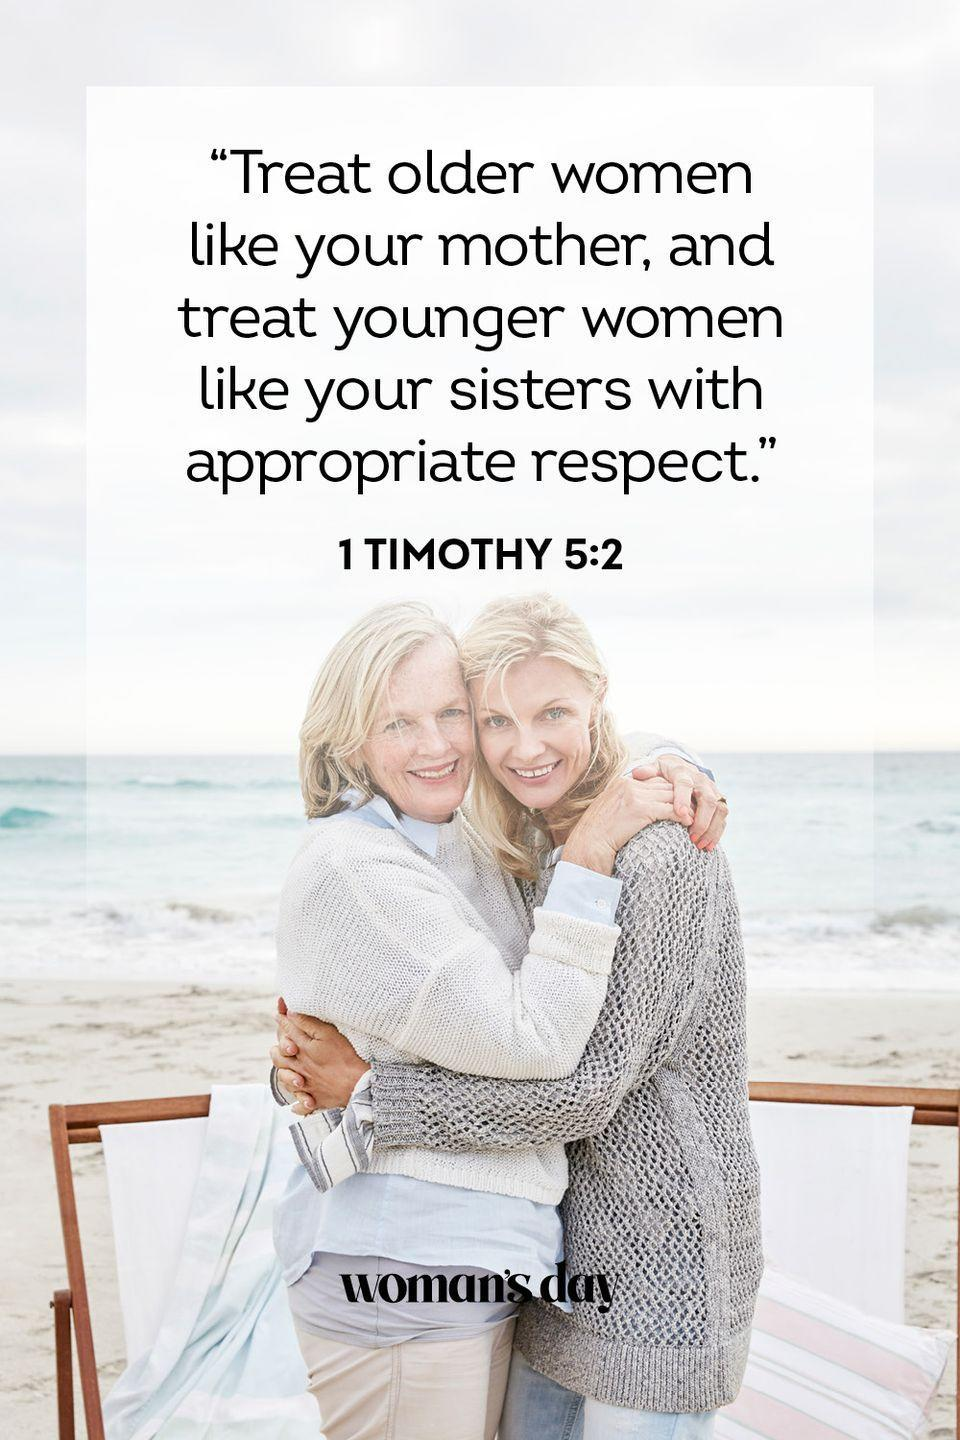 "<p>""Treat older women like your mother, and treat younger women like your sisters with appropriate respect.""</p><p><strong>The Good News:</strong> Something can be learned from women of all ages. We must respect them at all times.</p>"